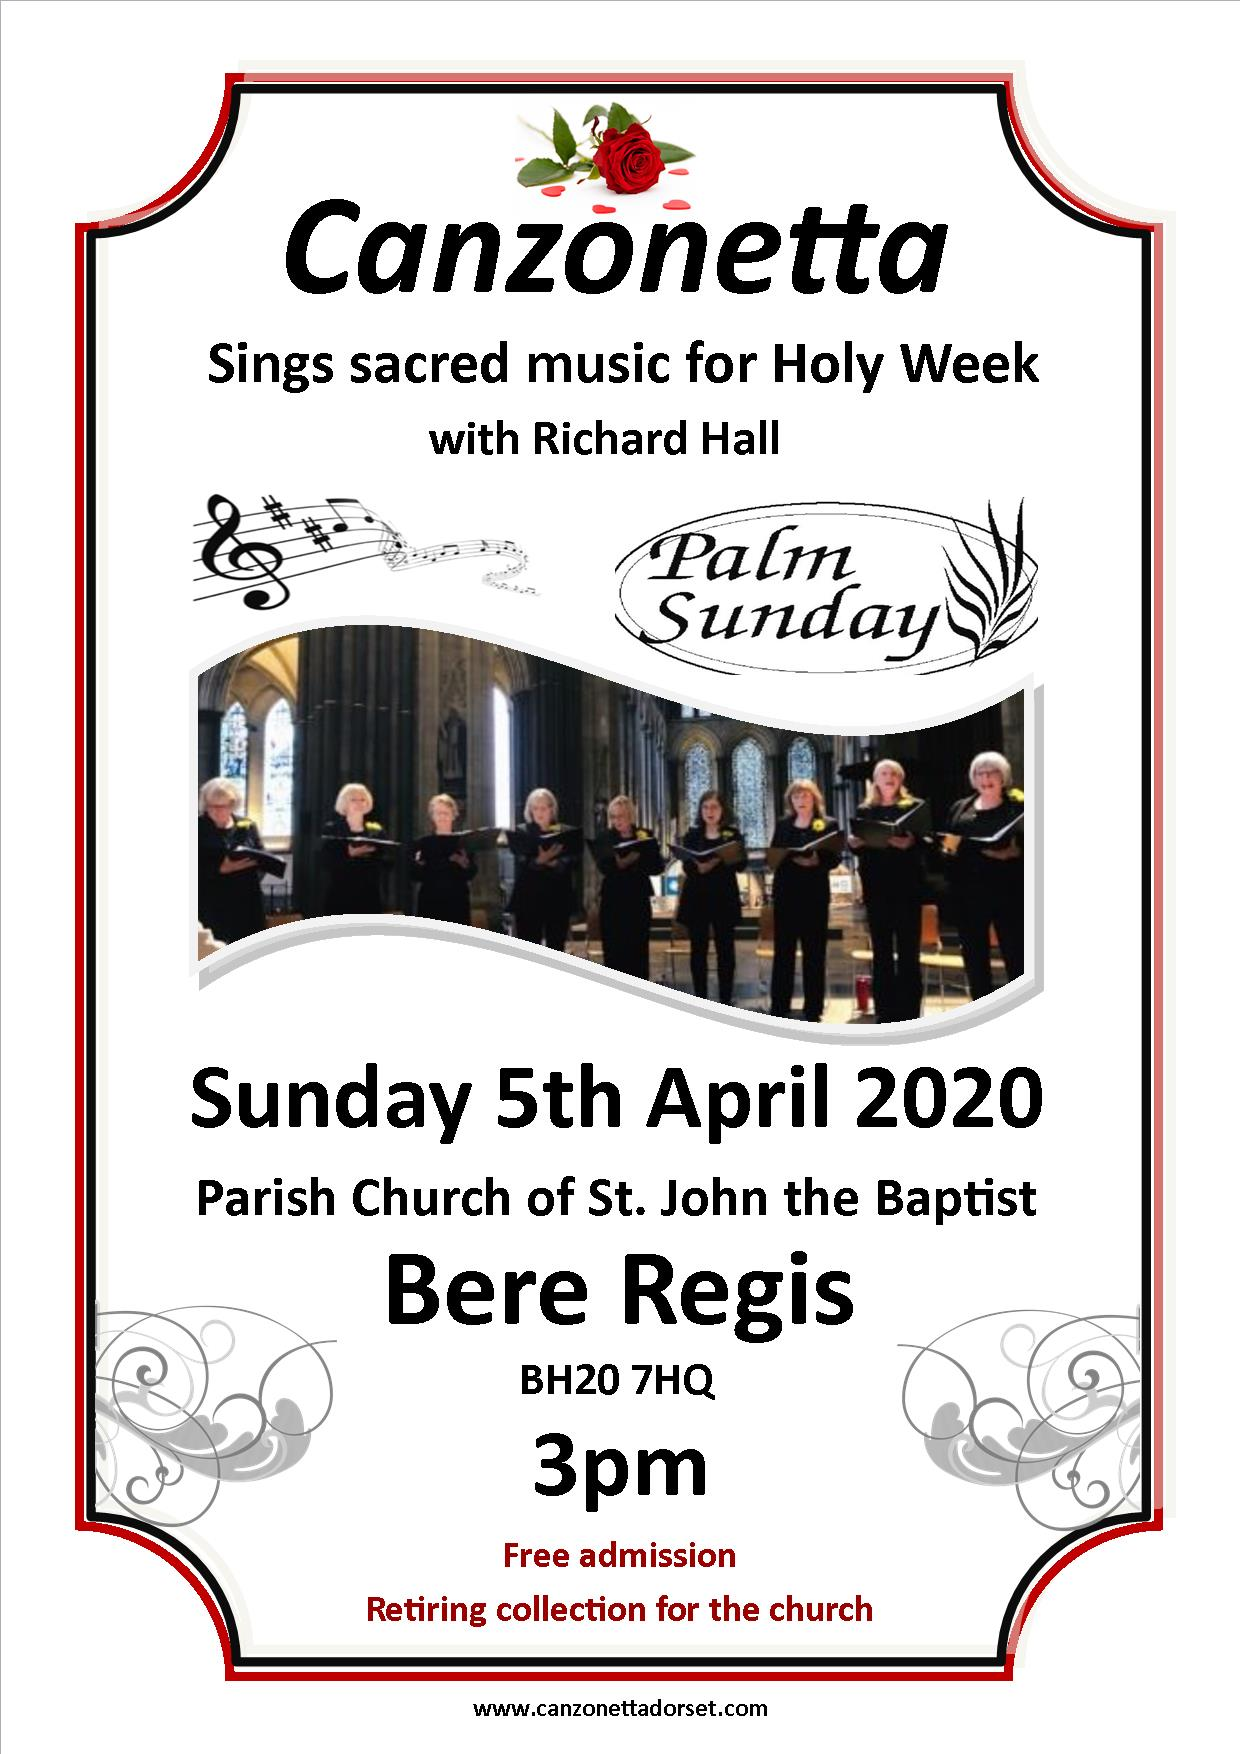 Canzonetta sings Sacred Music for Holy Week